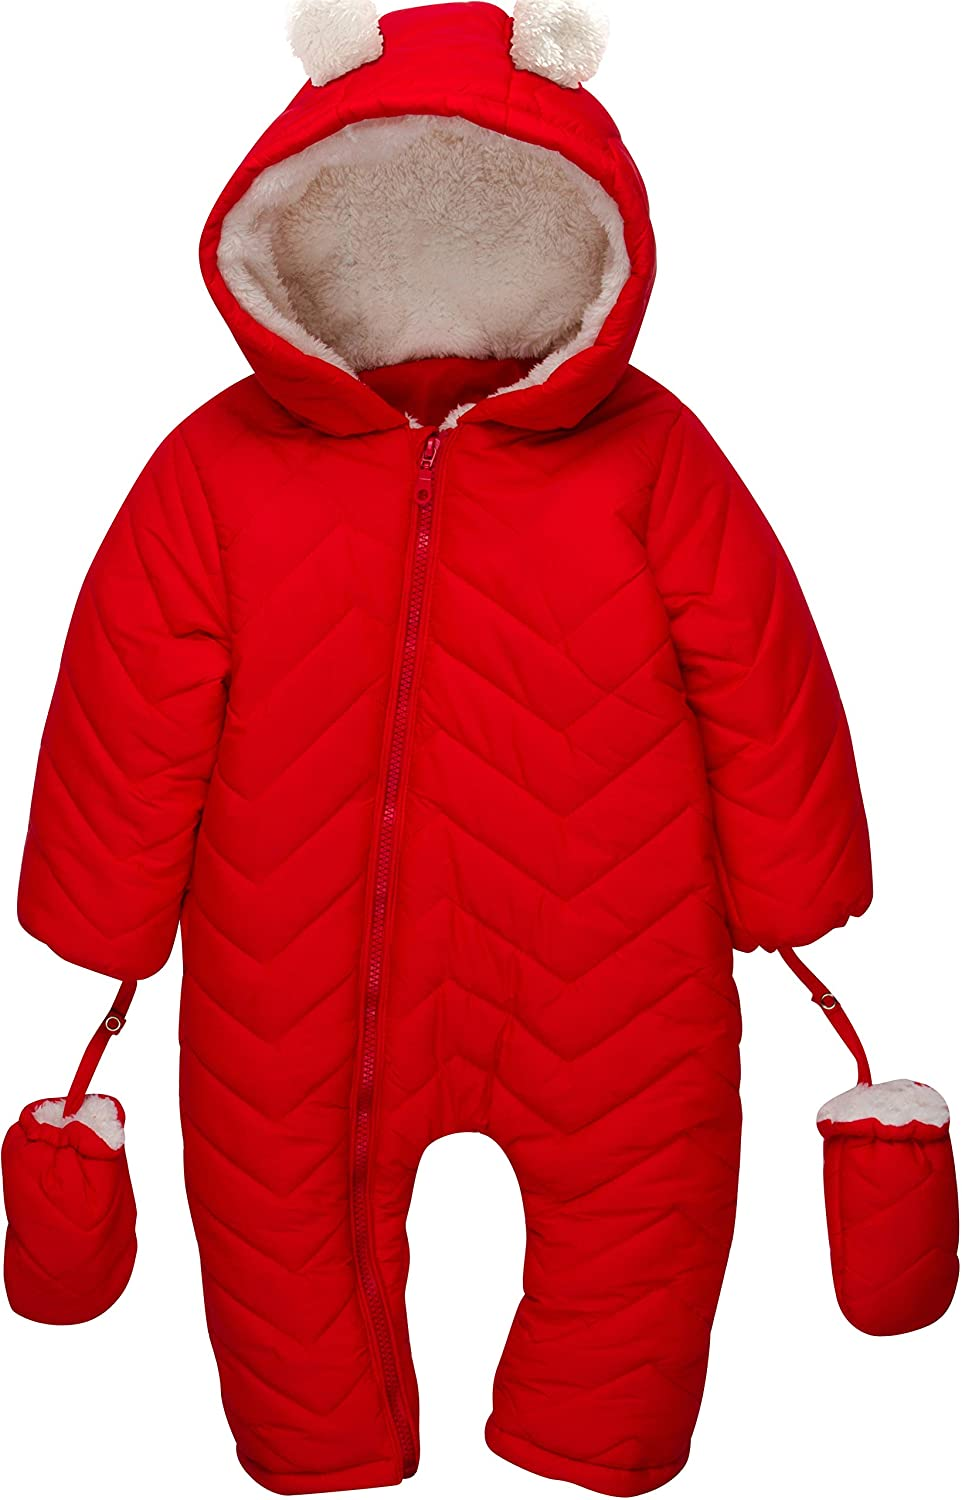 3 Happy Owls Winter California Weatherproof Hooded Baby Snow Suit Winter Bunting Pram Cherry Red)